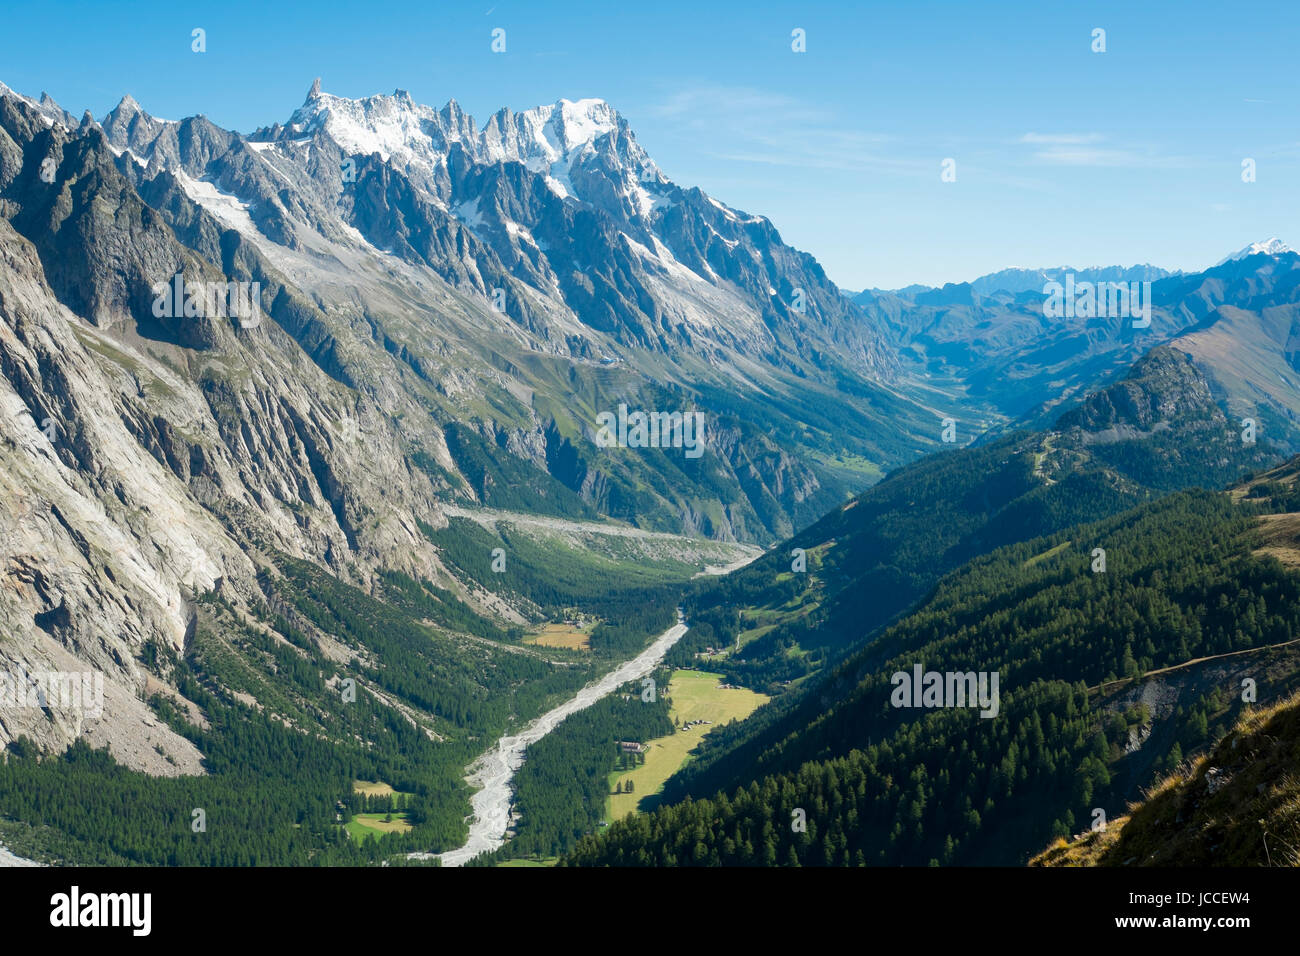 Val Veny valley in Val d'Aosta, in Italy, with Dora di Val Veny river and forests on hillsides. - Stock Image